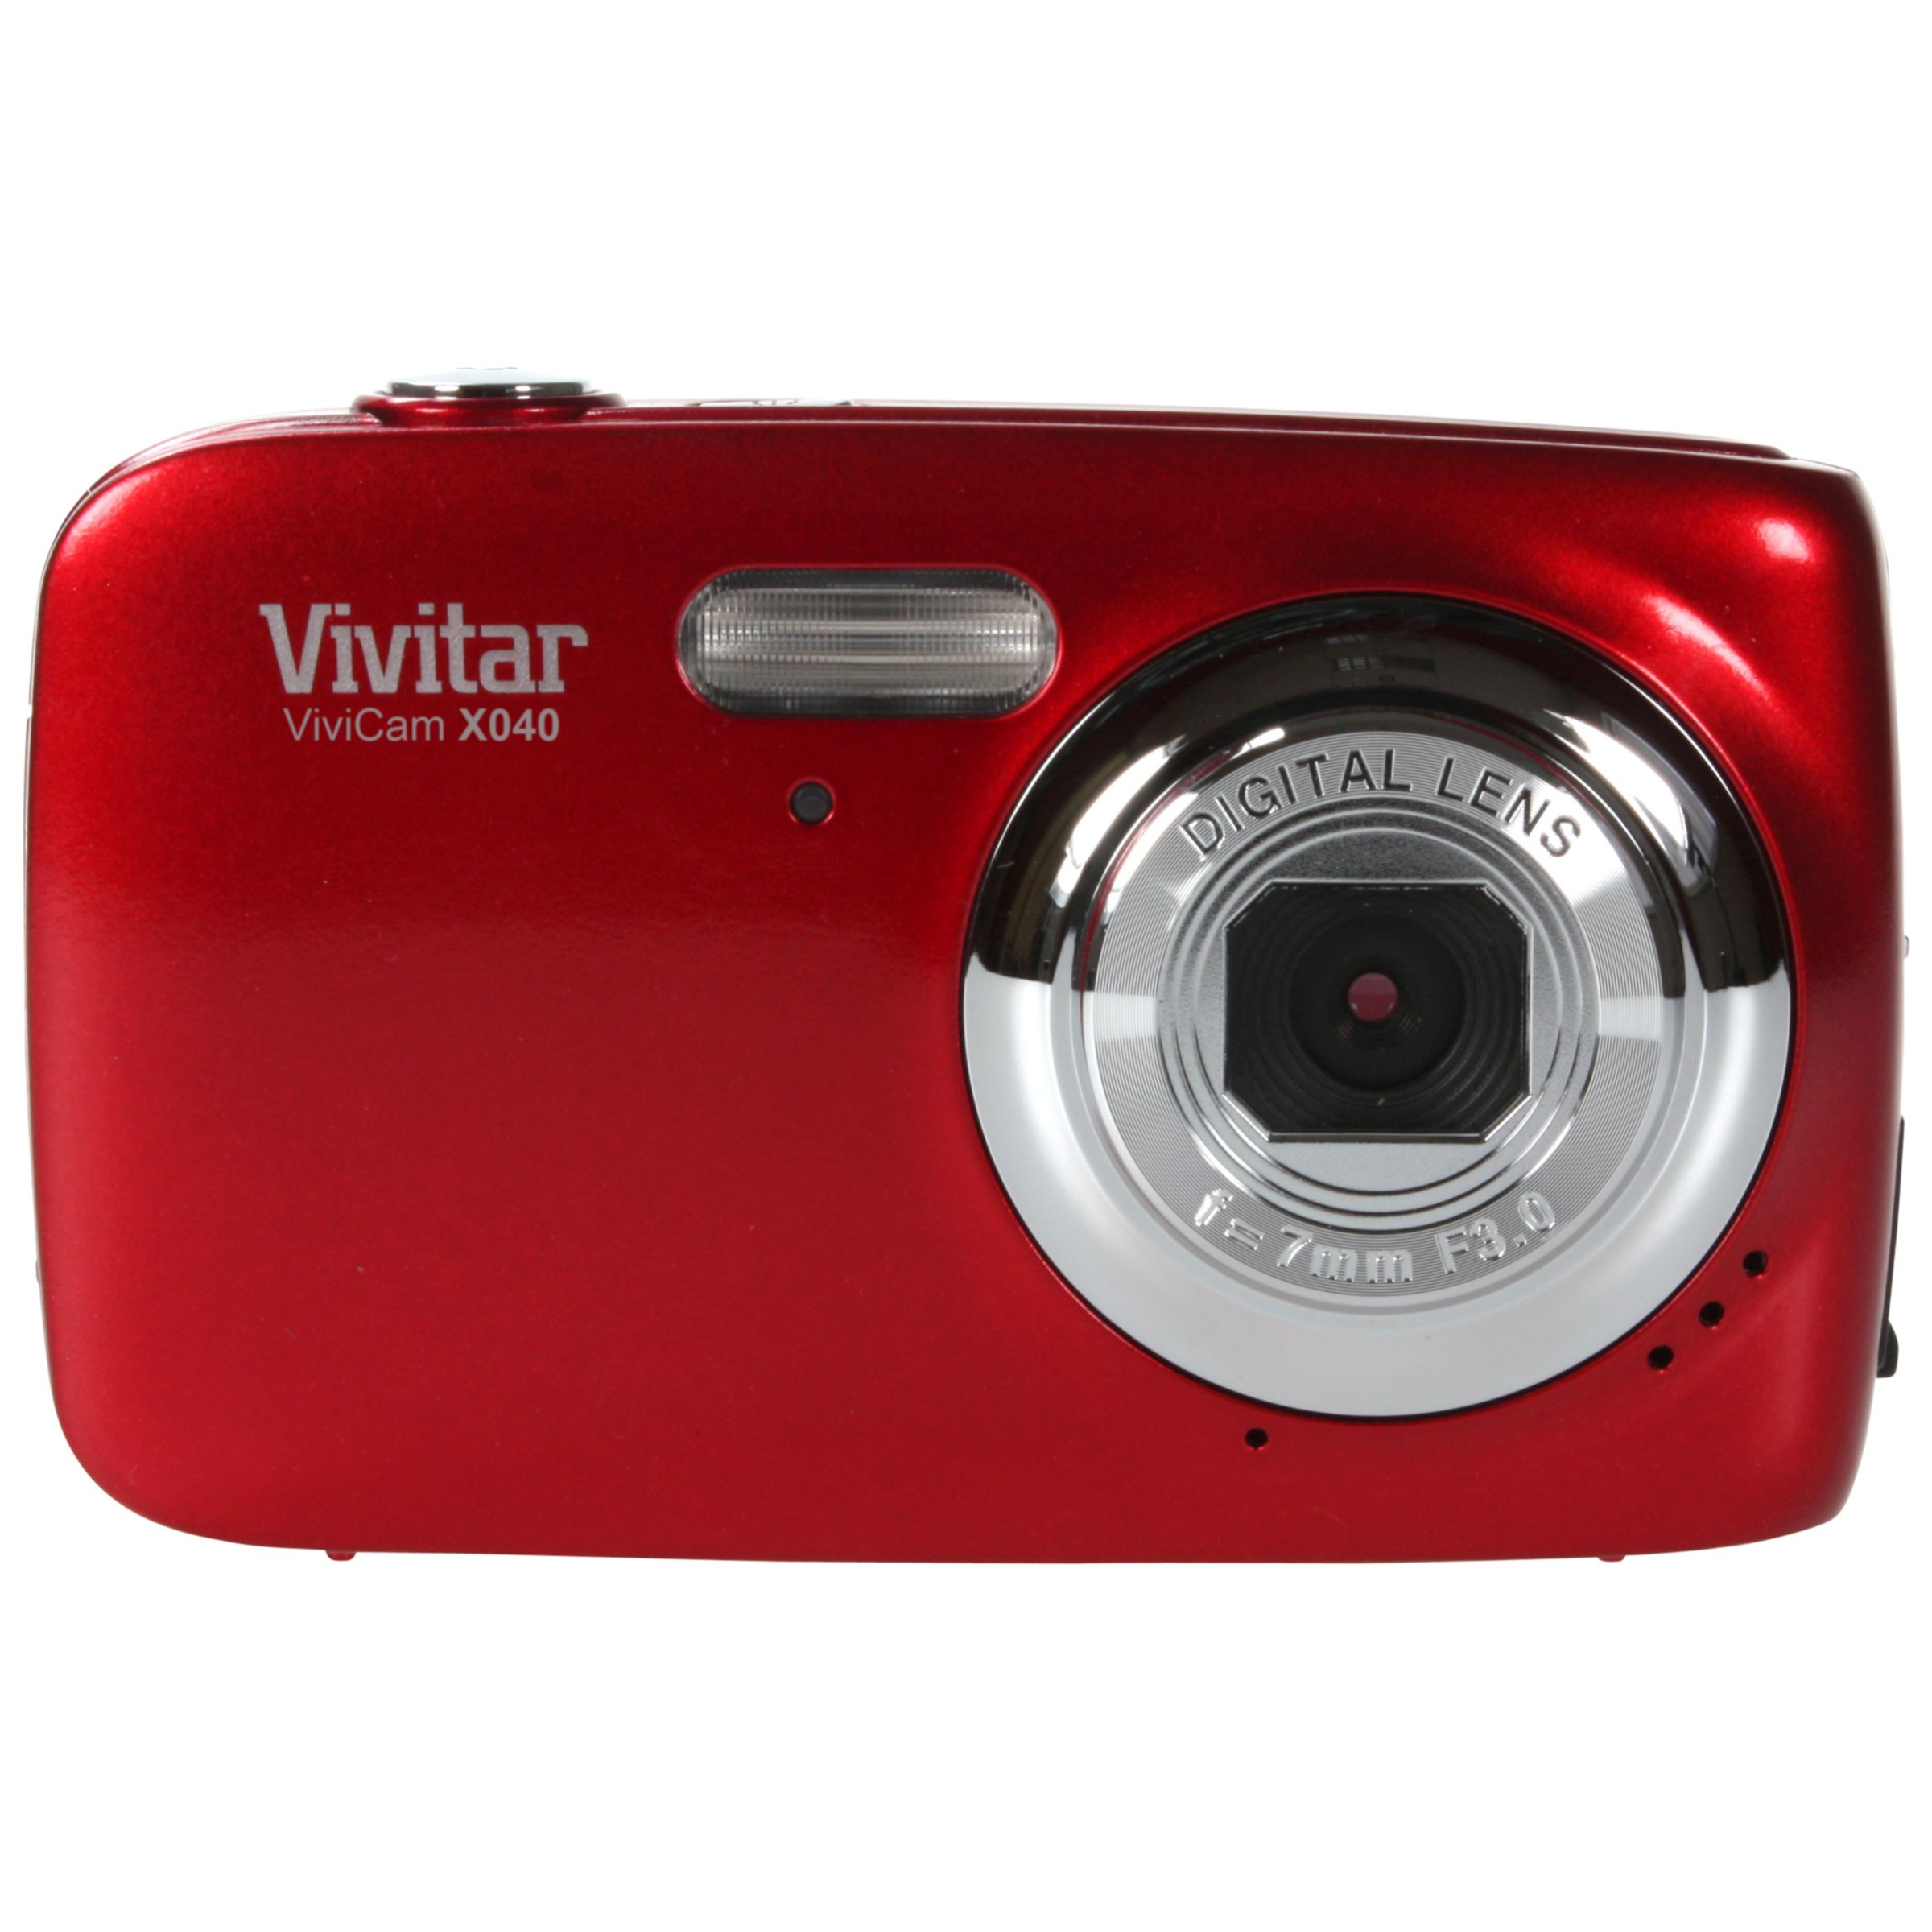 Vivitar X040 10.1 Mega Pixel Digital Camera, Red